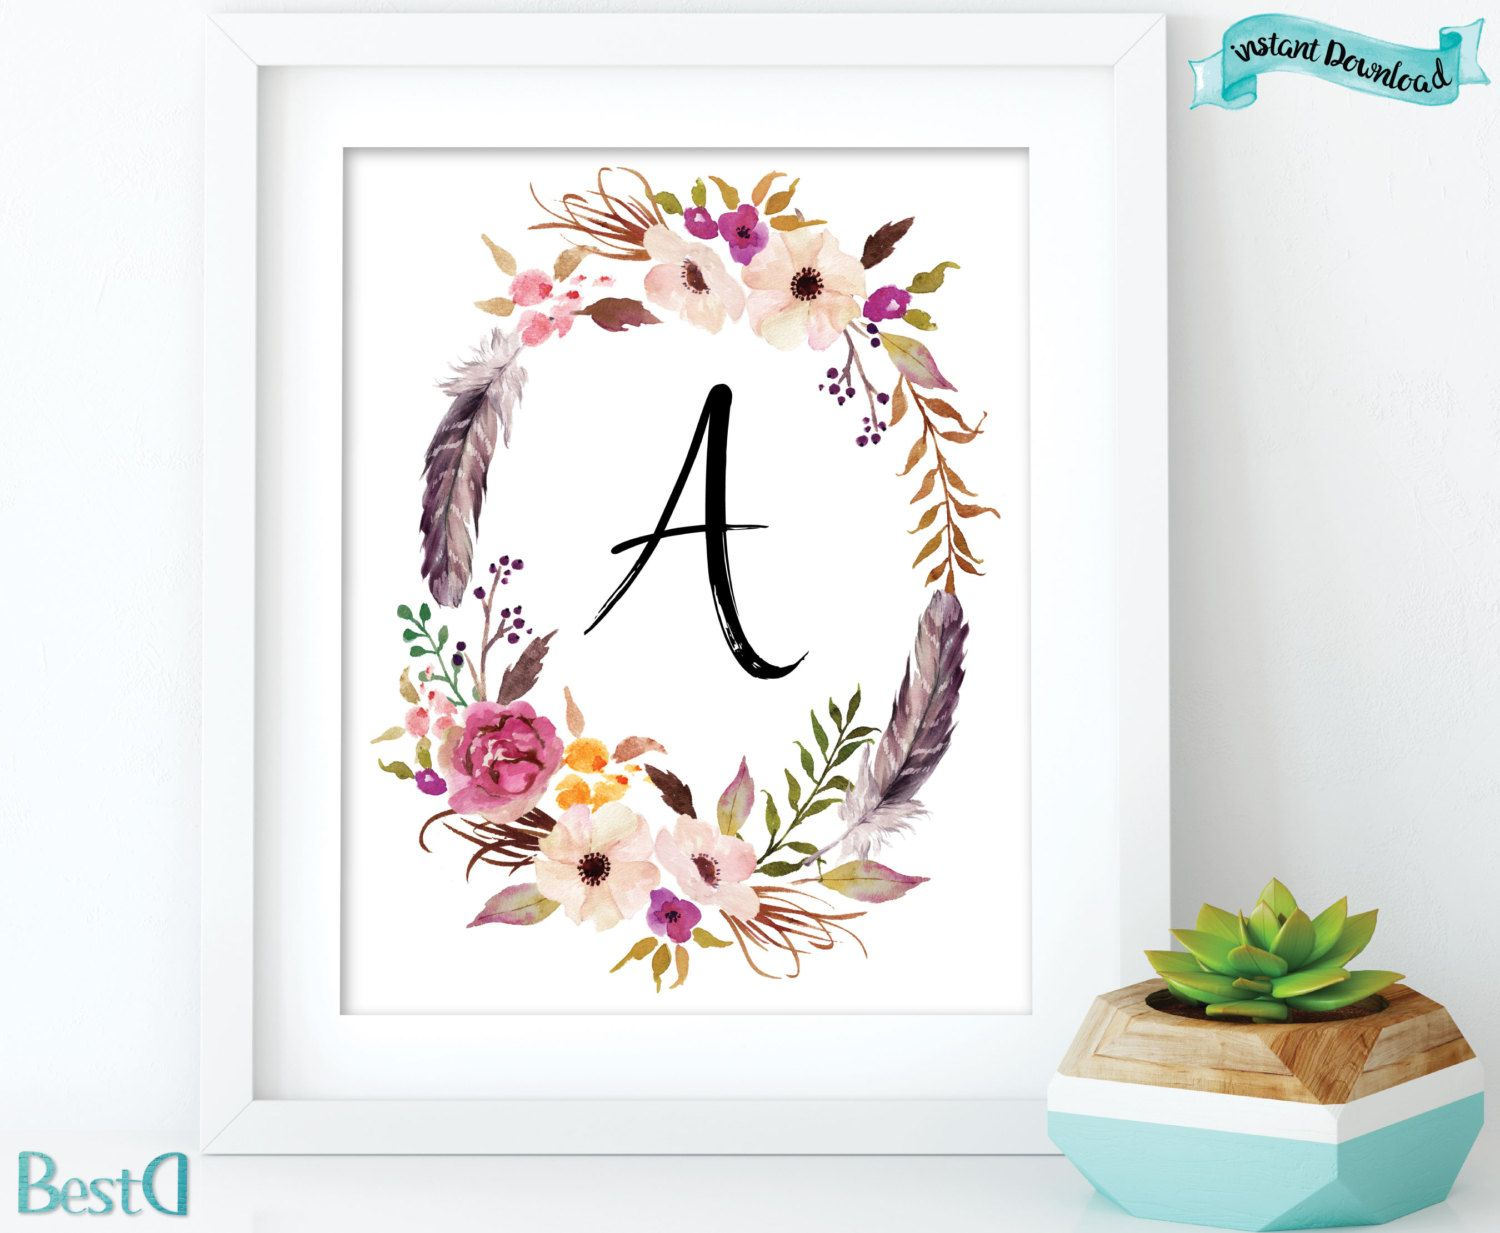 Baby Monogram Wall Decor Monogram Letter Printablewatercolor Flowers And Feathers Wreath